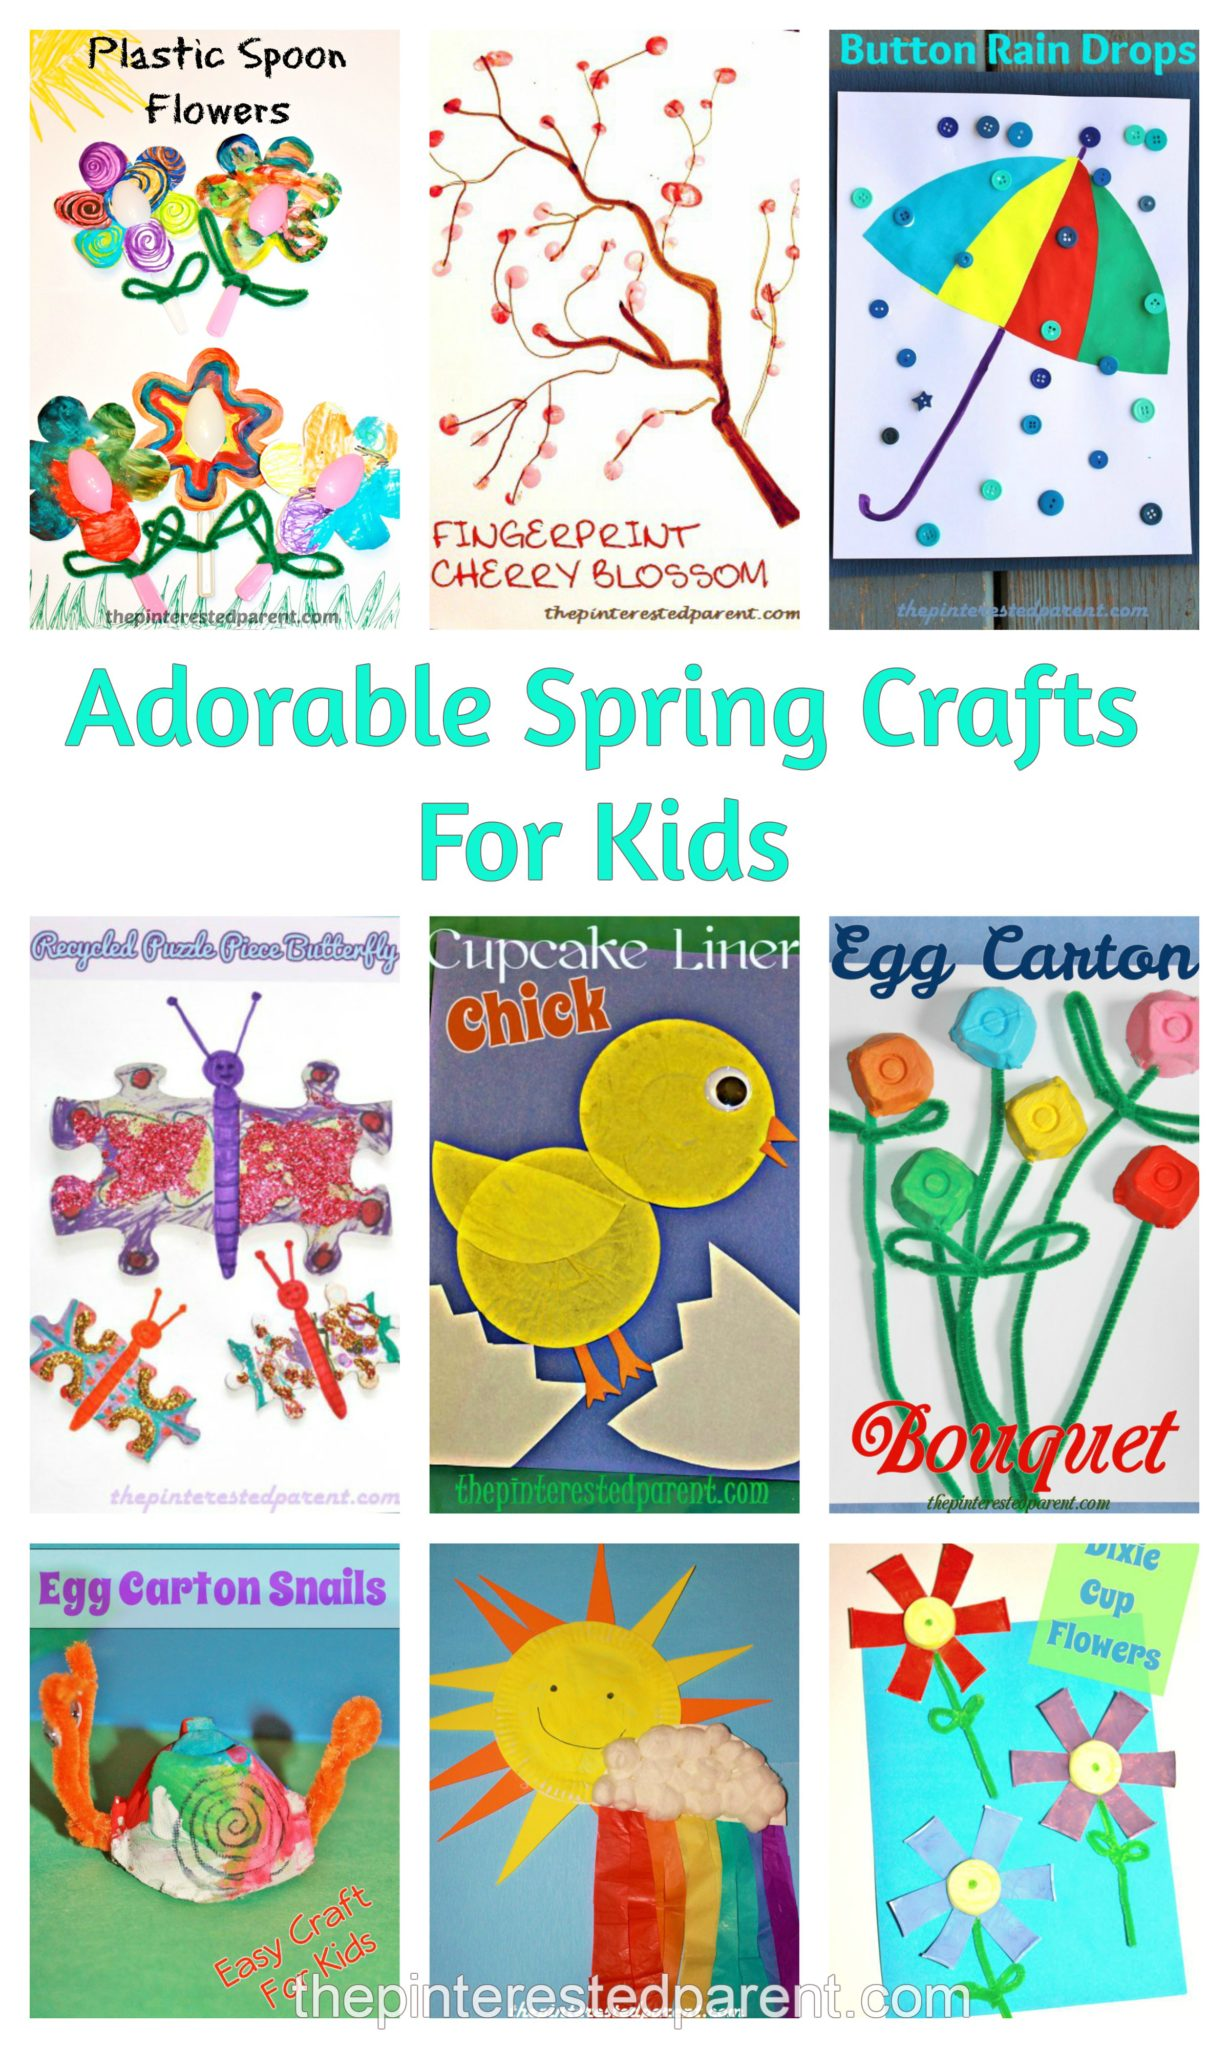 Cute Simple Spring Crafts For Kids on Paper Plate Umbrella Craft